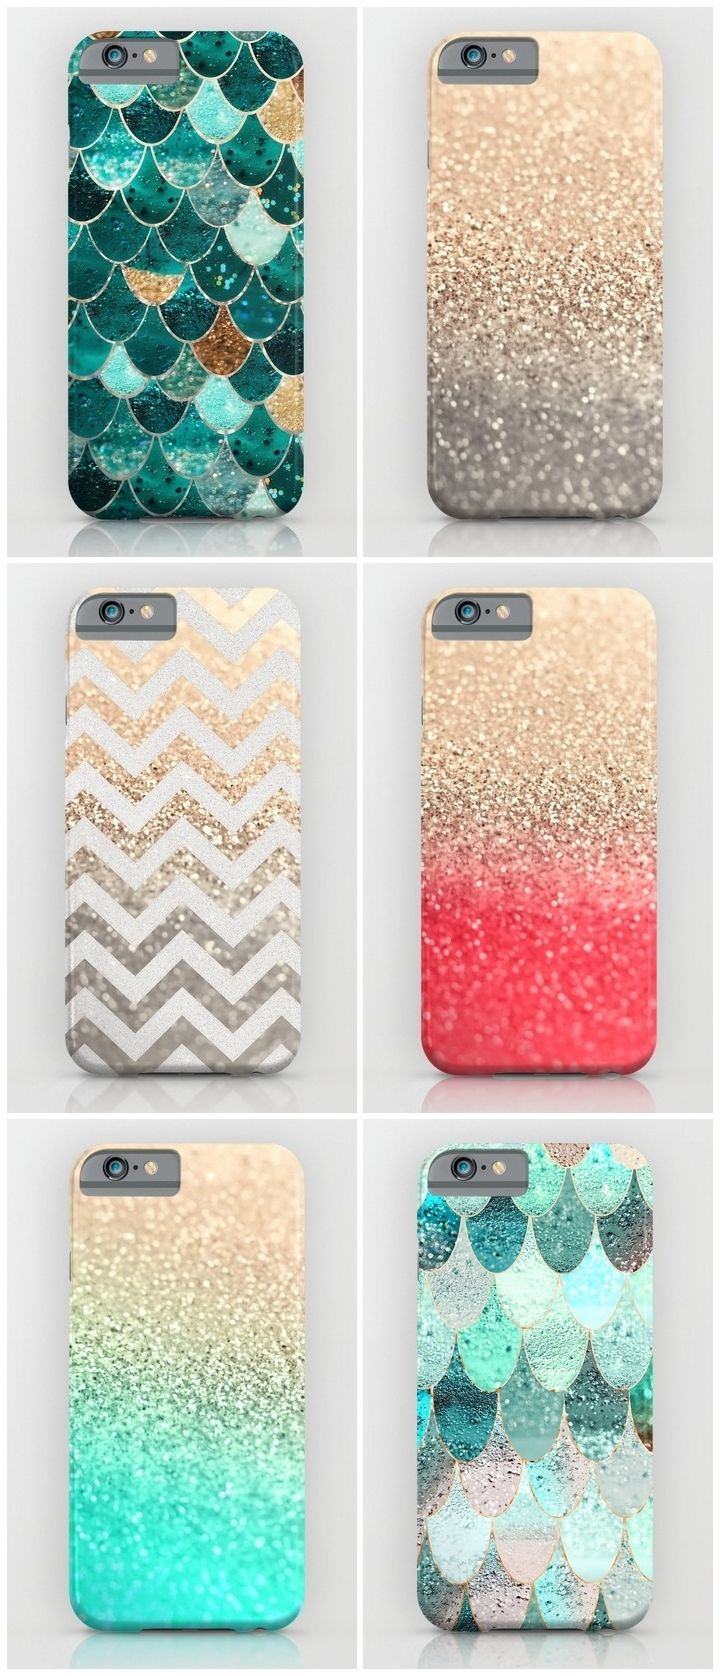 The Most Adorable Cases For This Summer Made By Me With Love For You For All Iphone Models And Samsun Handyhullen Selbstgemacht Diy Handyhulle Am Telefon